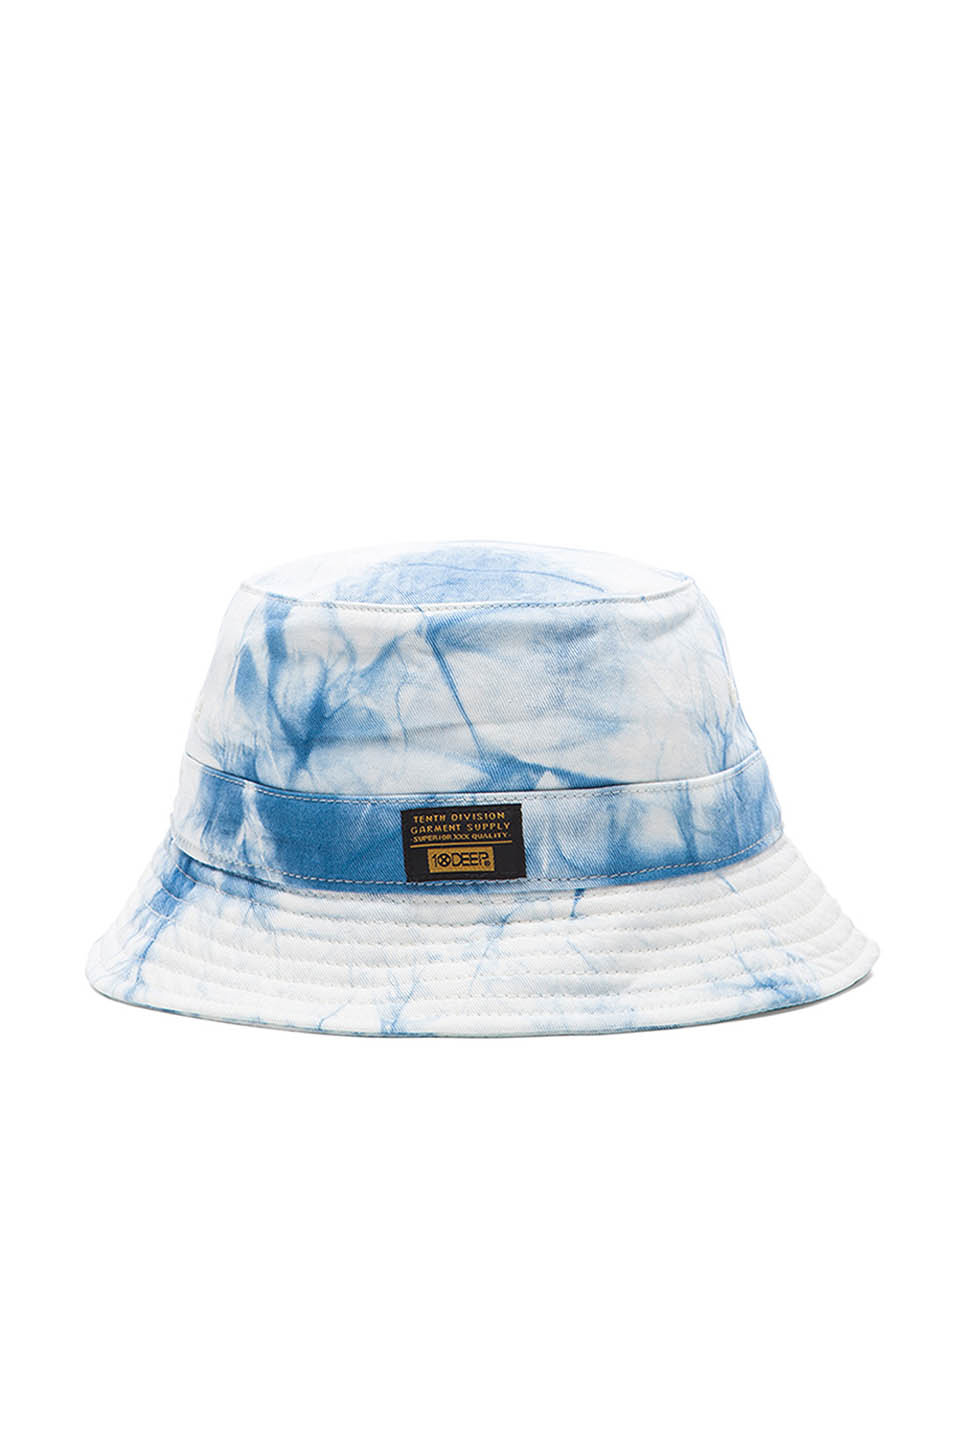 fa725c1c01f Lyst - 10.Deep Thompson S Bucket Hat in Blue for Men